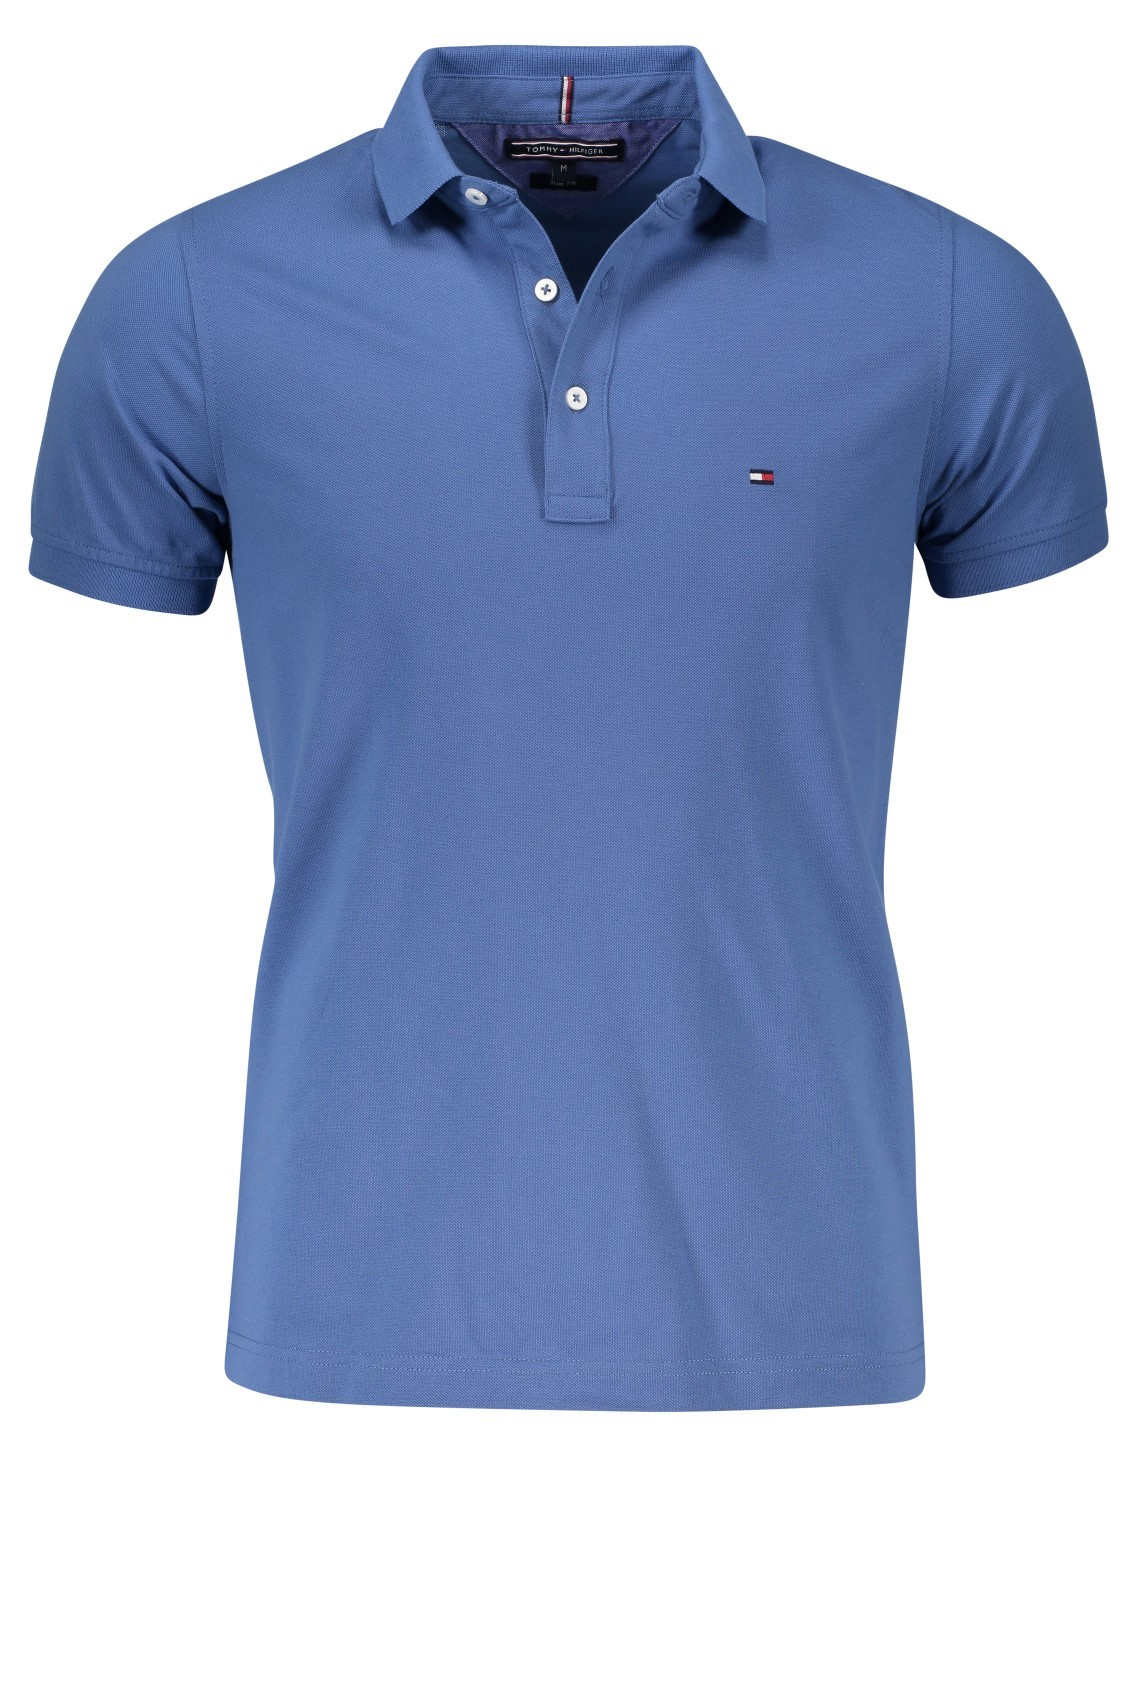 Slim fit Tommy Hilfiger polo shirt blauw met logo